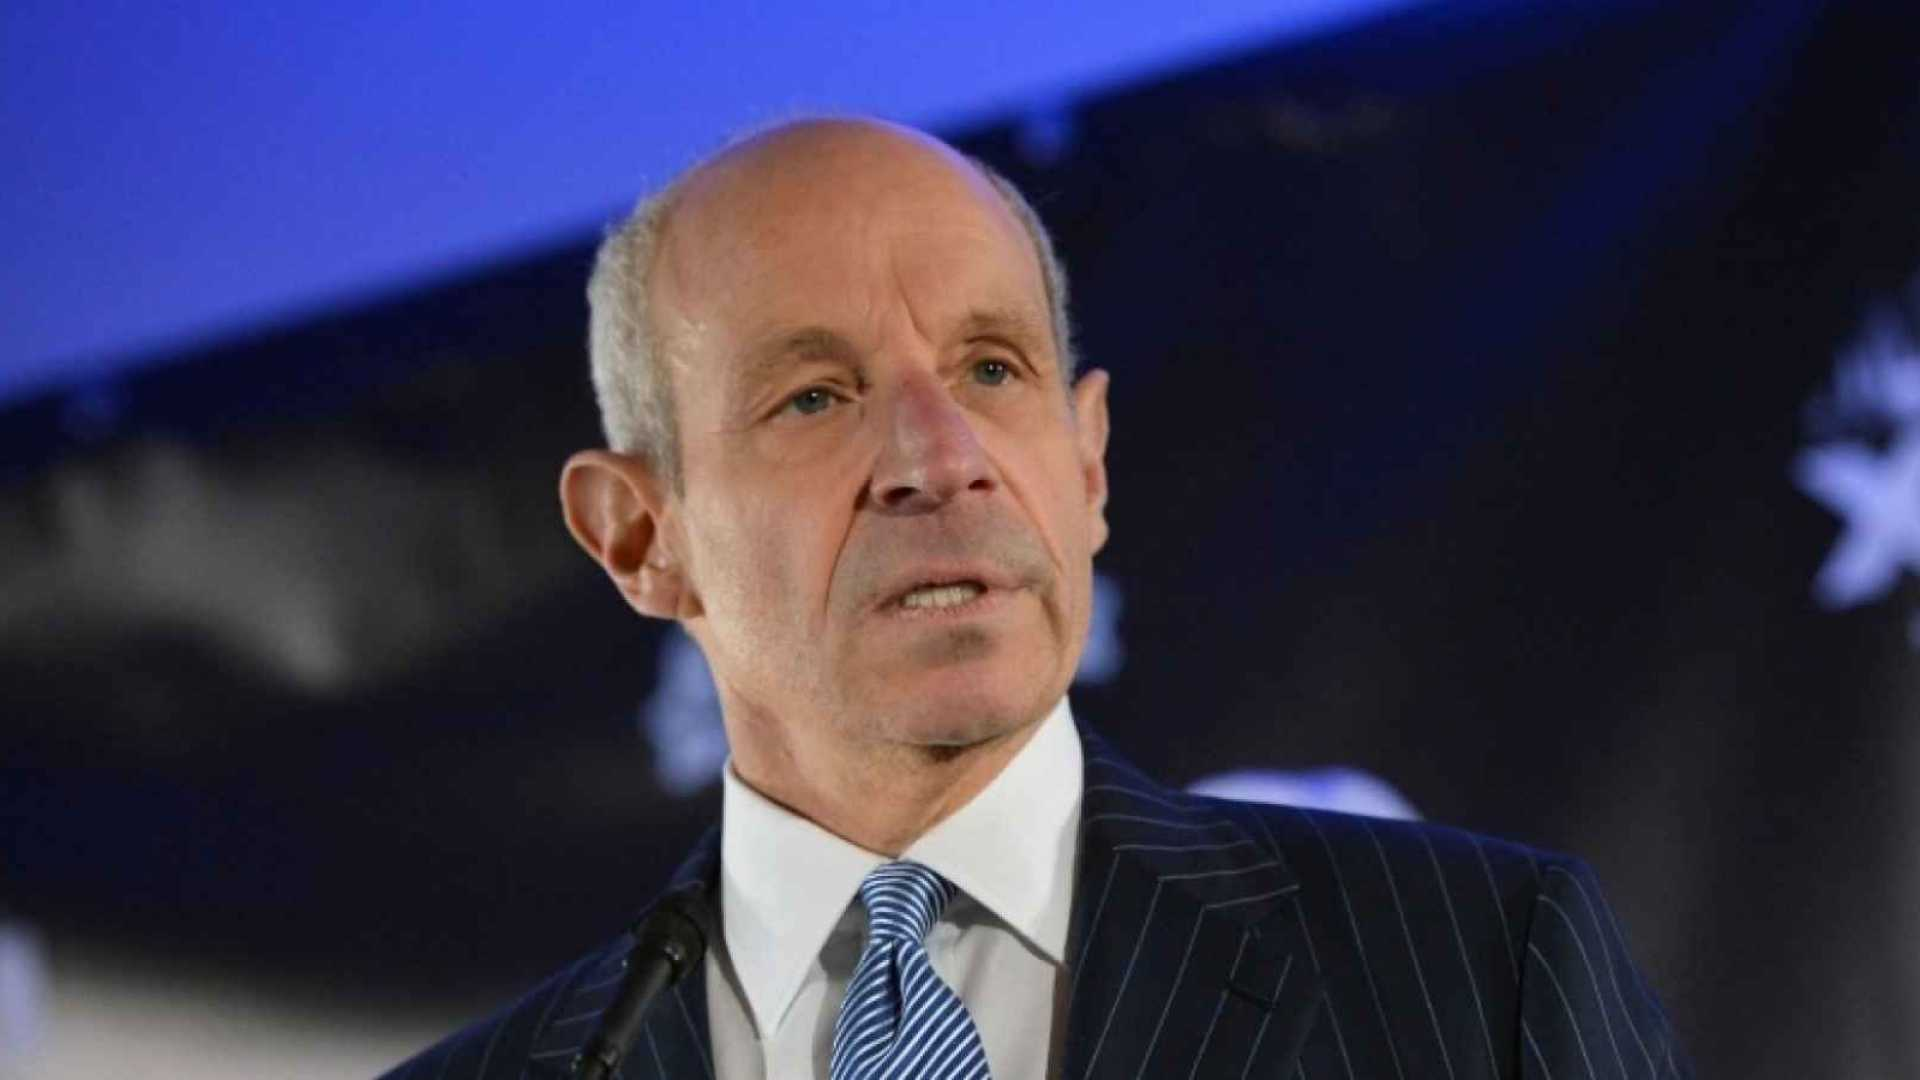 Jonathan Tisch, co-chairman of the board of Loews Corporation and co-owner of the New York Giants